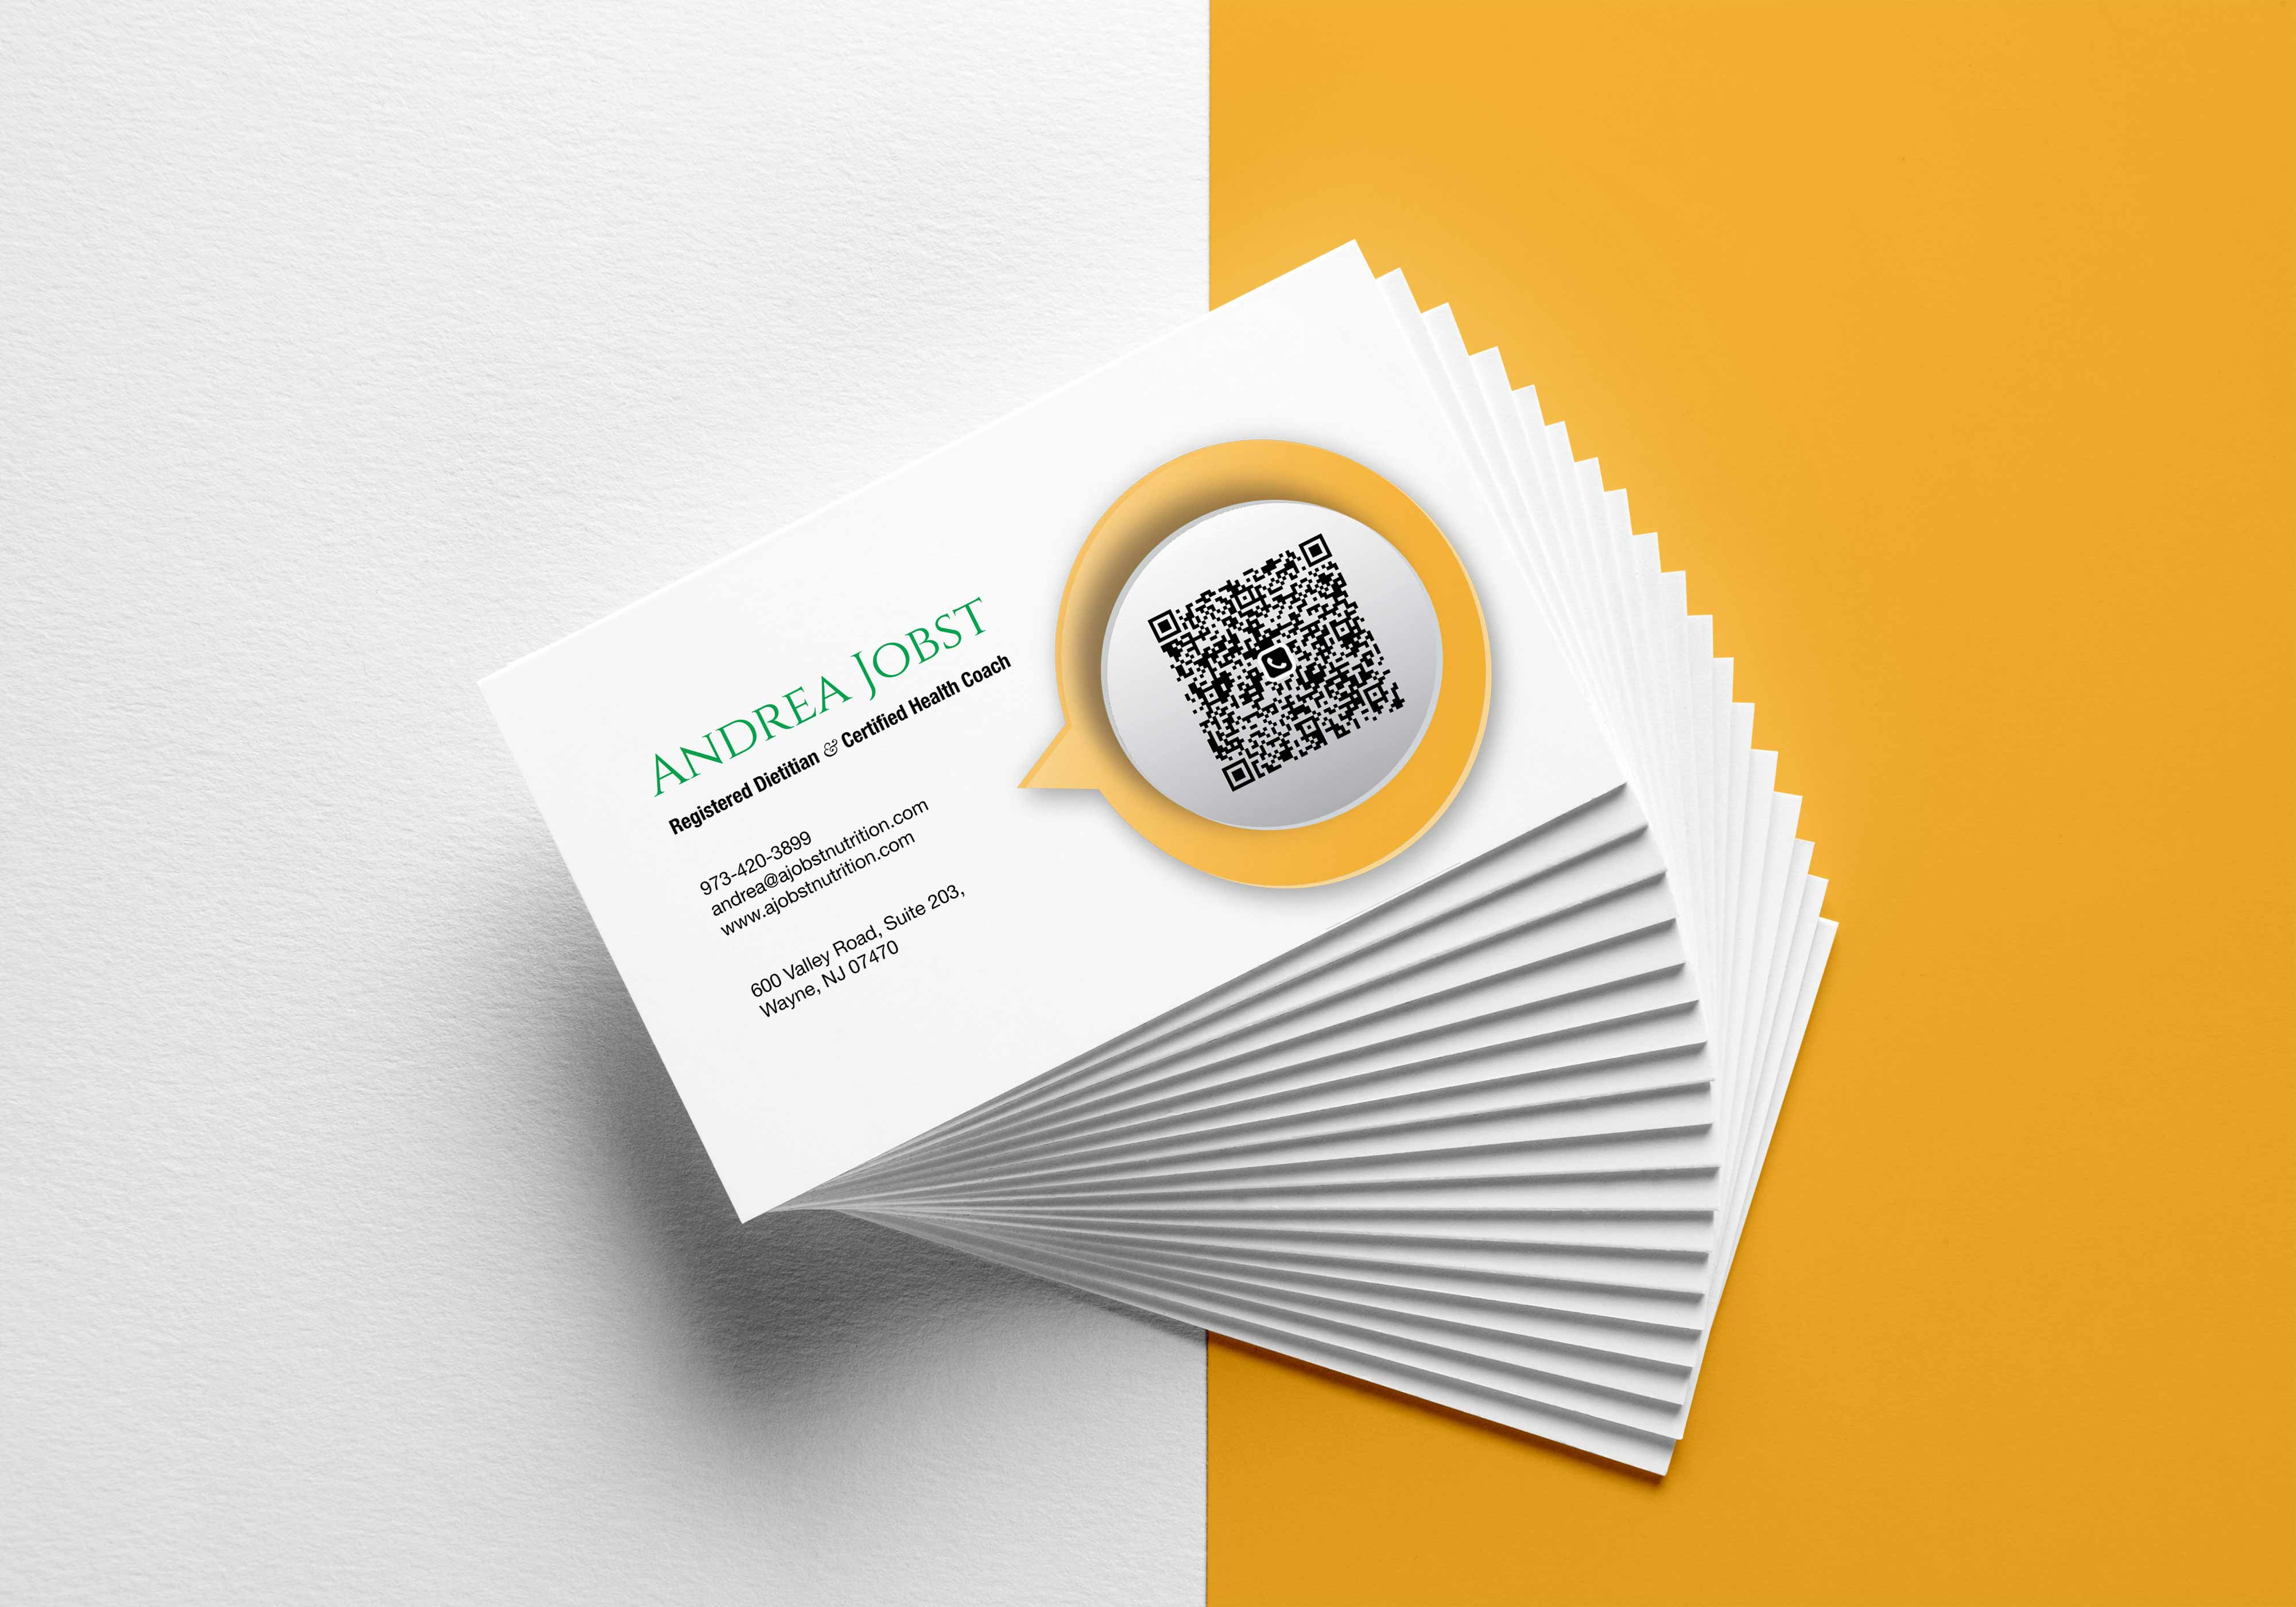 business cards for a jobst nutrition — registered titian